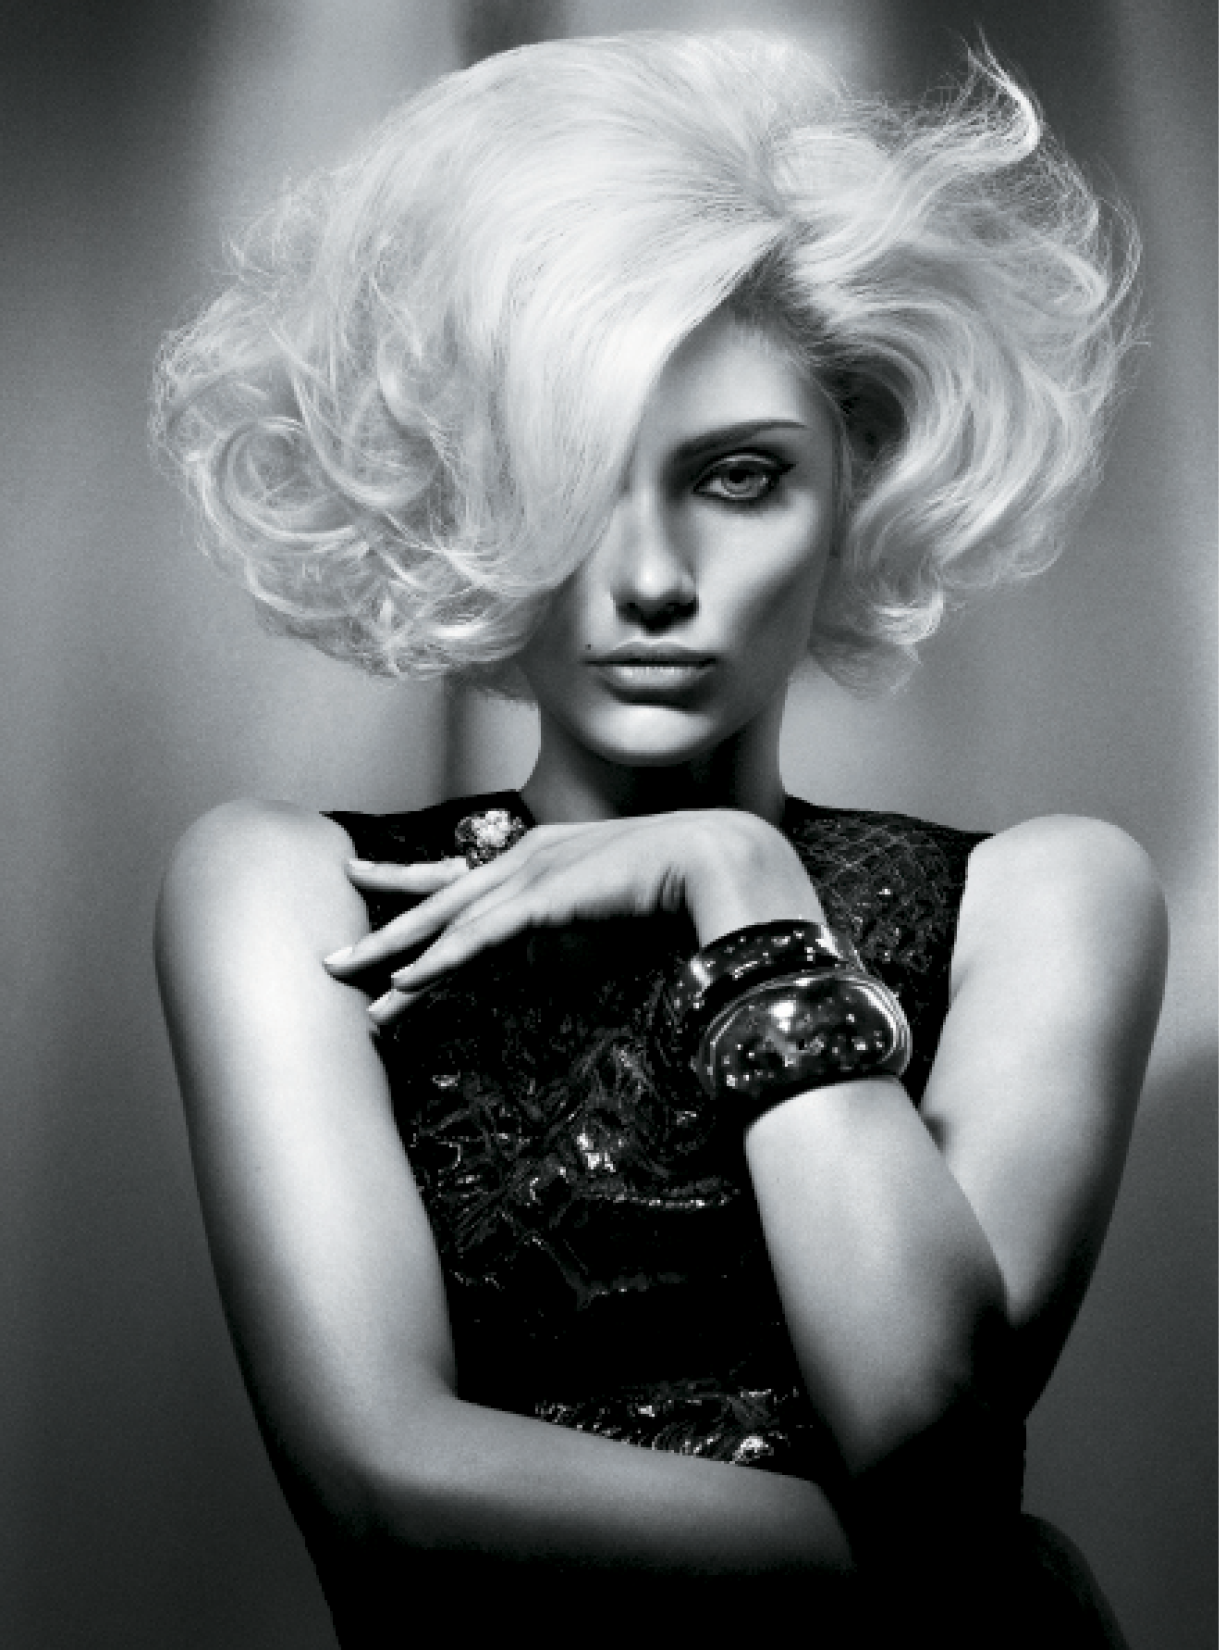 Leeson applied volumizing mousse and used a large radial bristle brush to create ultimate lift, volume and smoothness. Using a directional winding technique and alternate-sized heated rollers, he created soft voluminous waves. For added width and a glamorous finish, Leeson relied on backcombing at the crown and side sections.